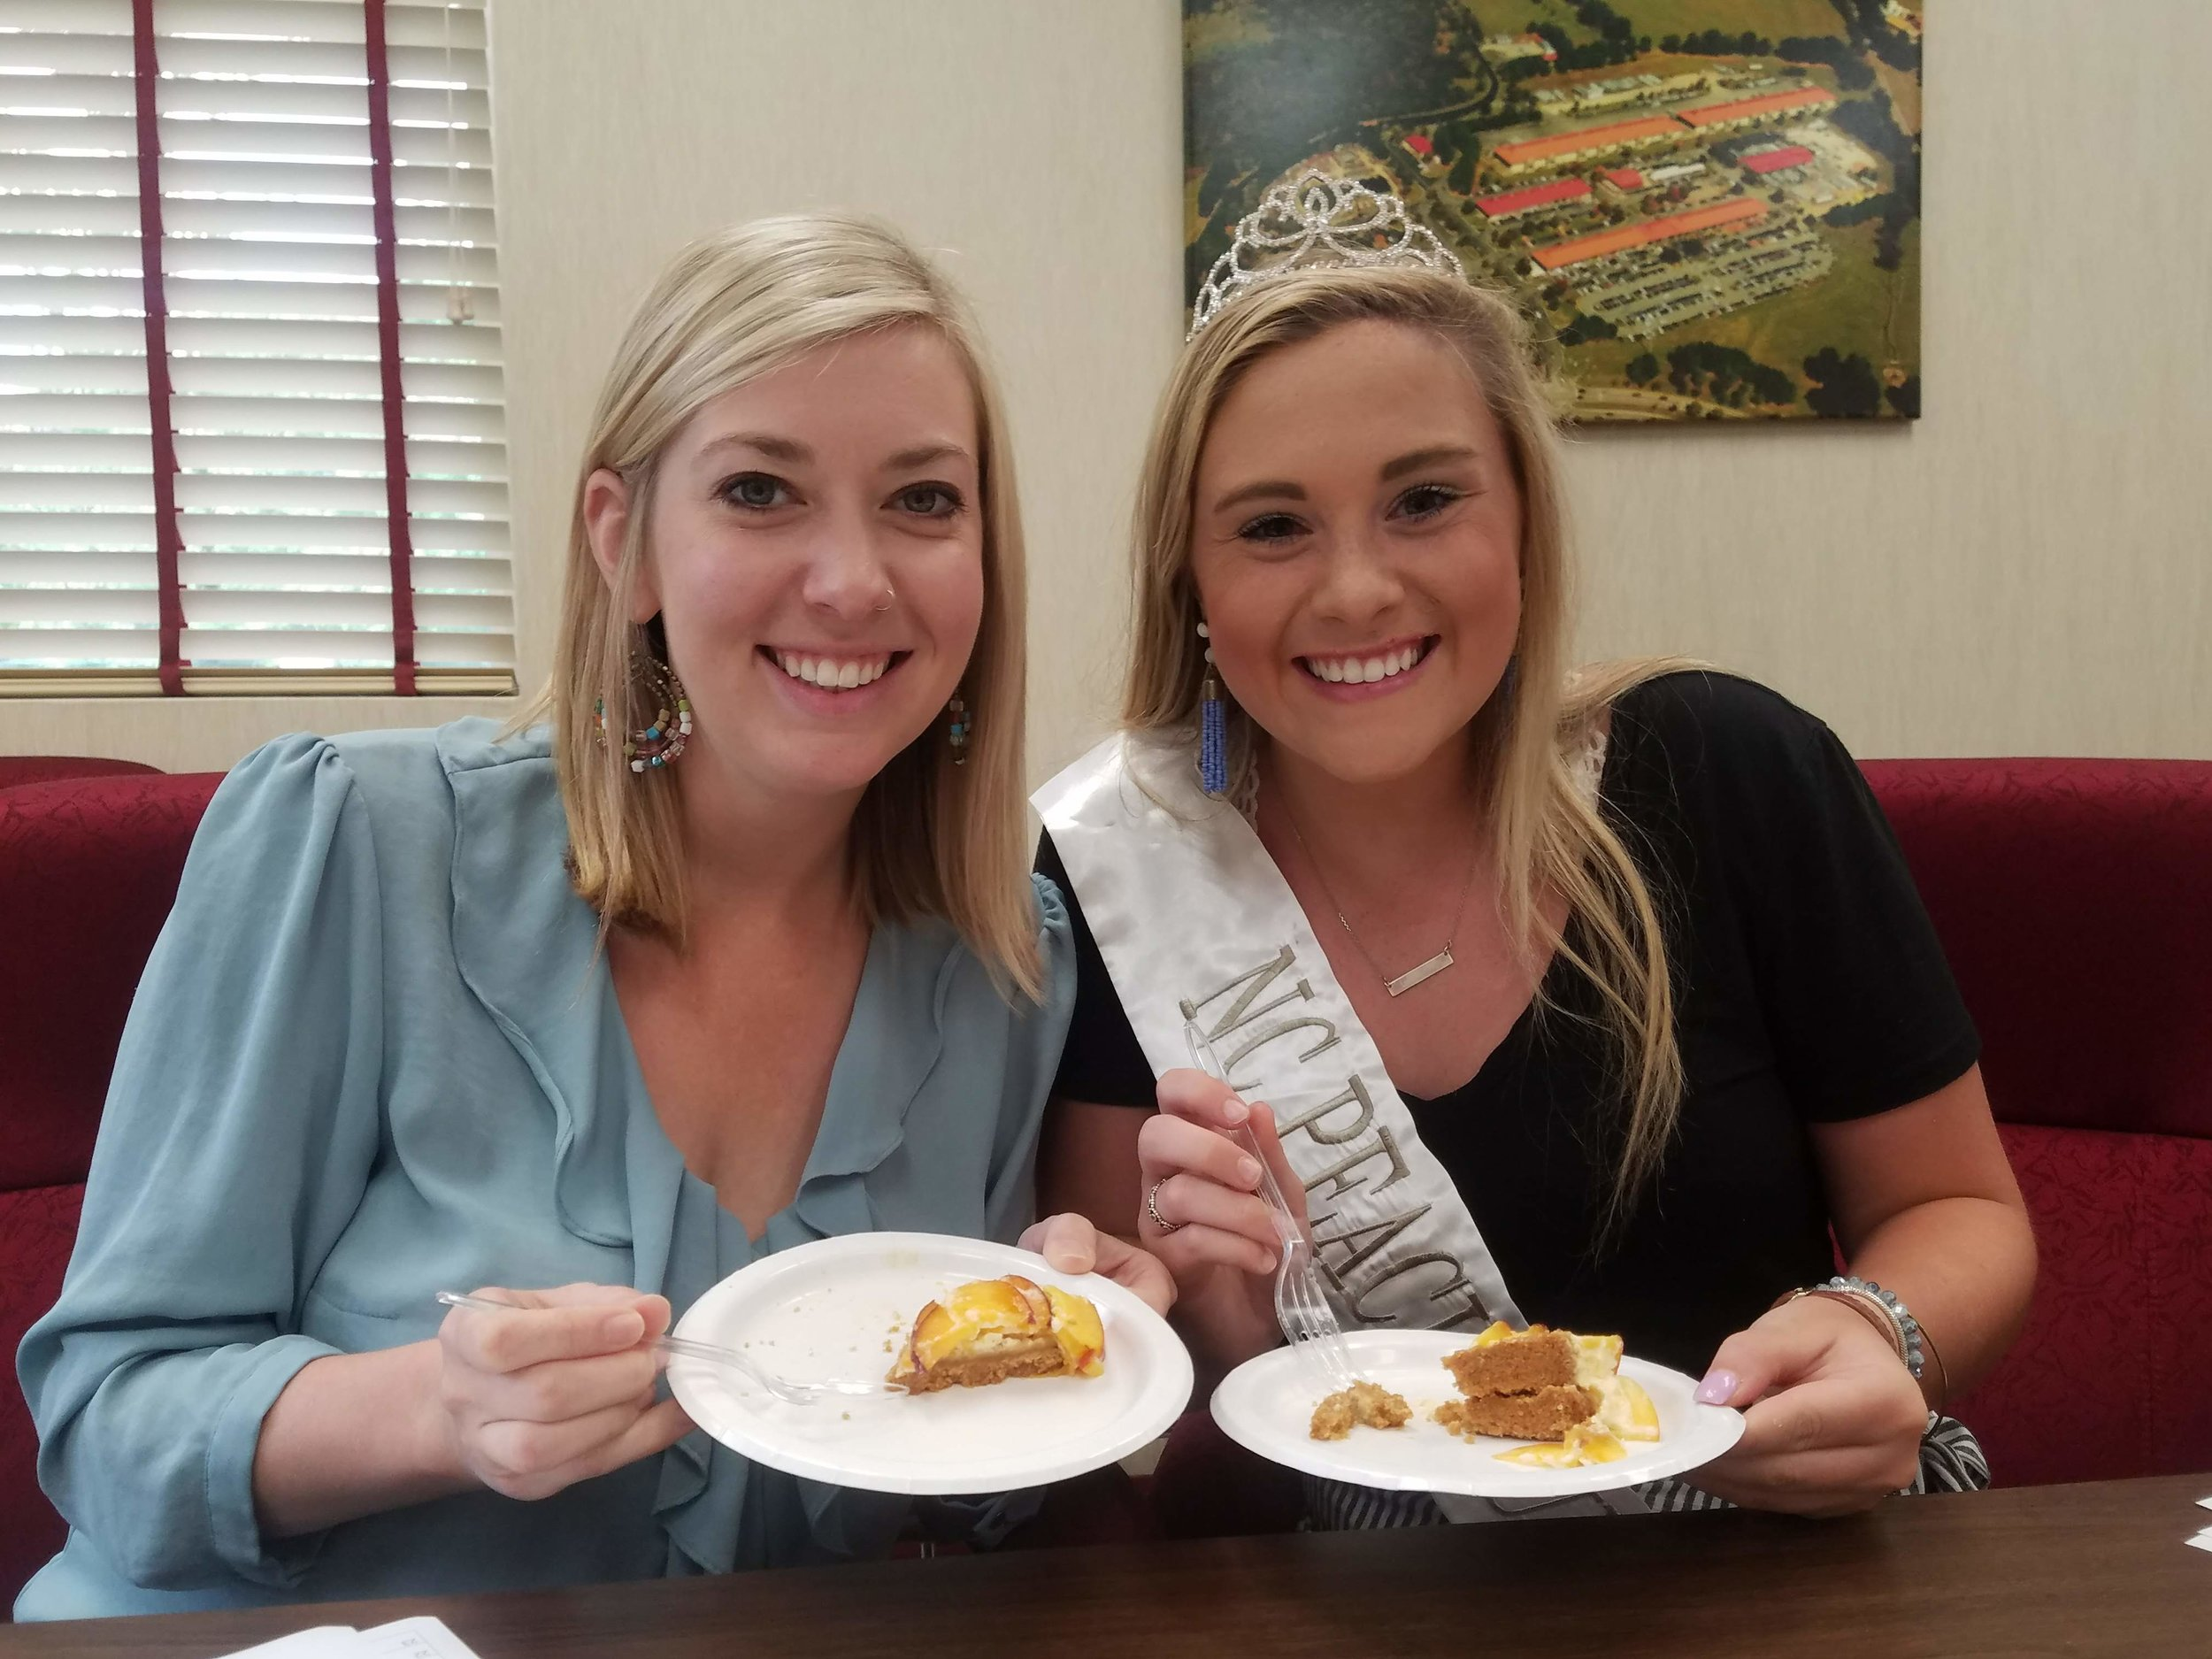 Kristen Baughman with the 2018 North Carolina Peach Queen serving on the panel of judges.